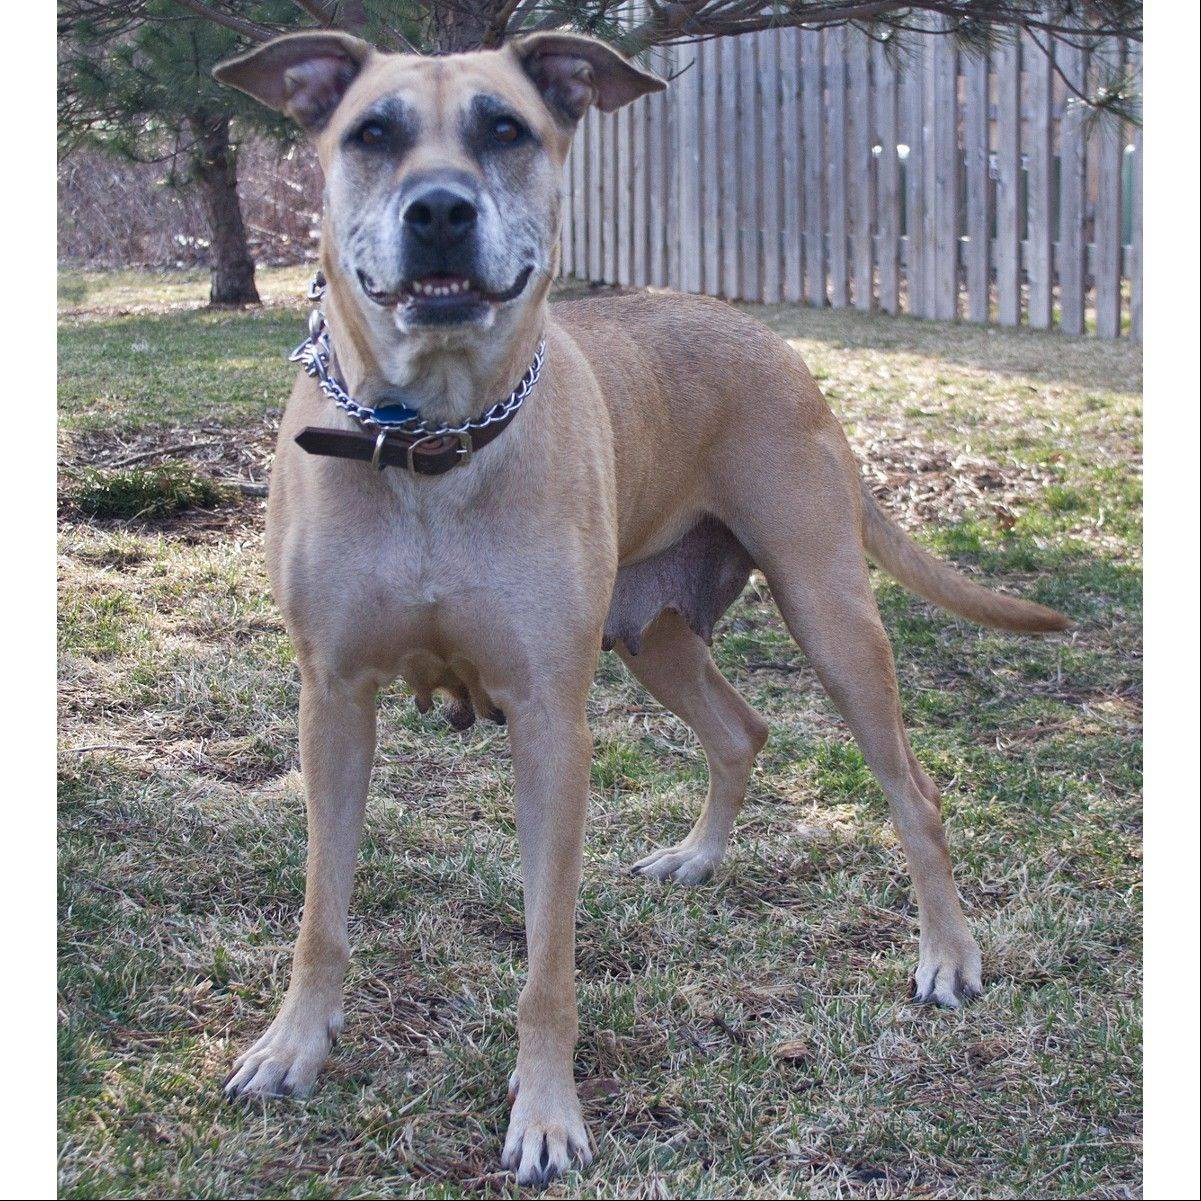 Bella is an 80-pound, Labrador retriever mix, who is about 6 years old. She wants a home with you.